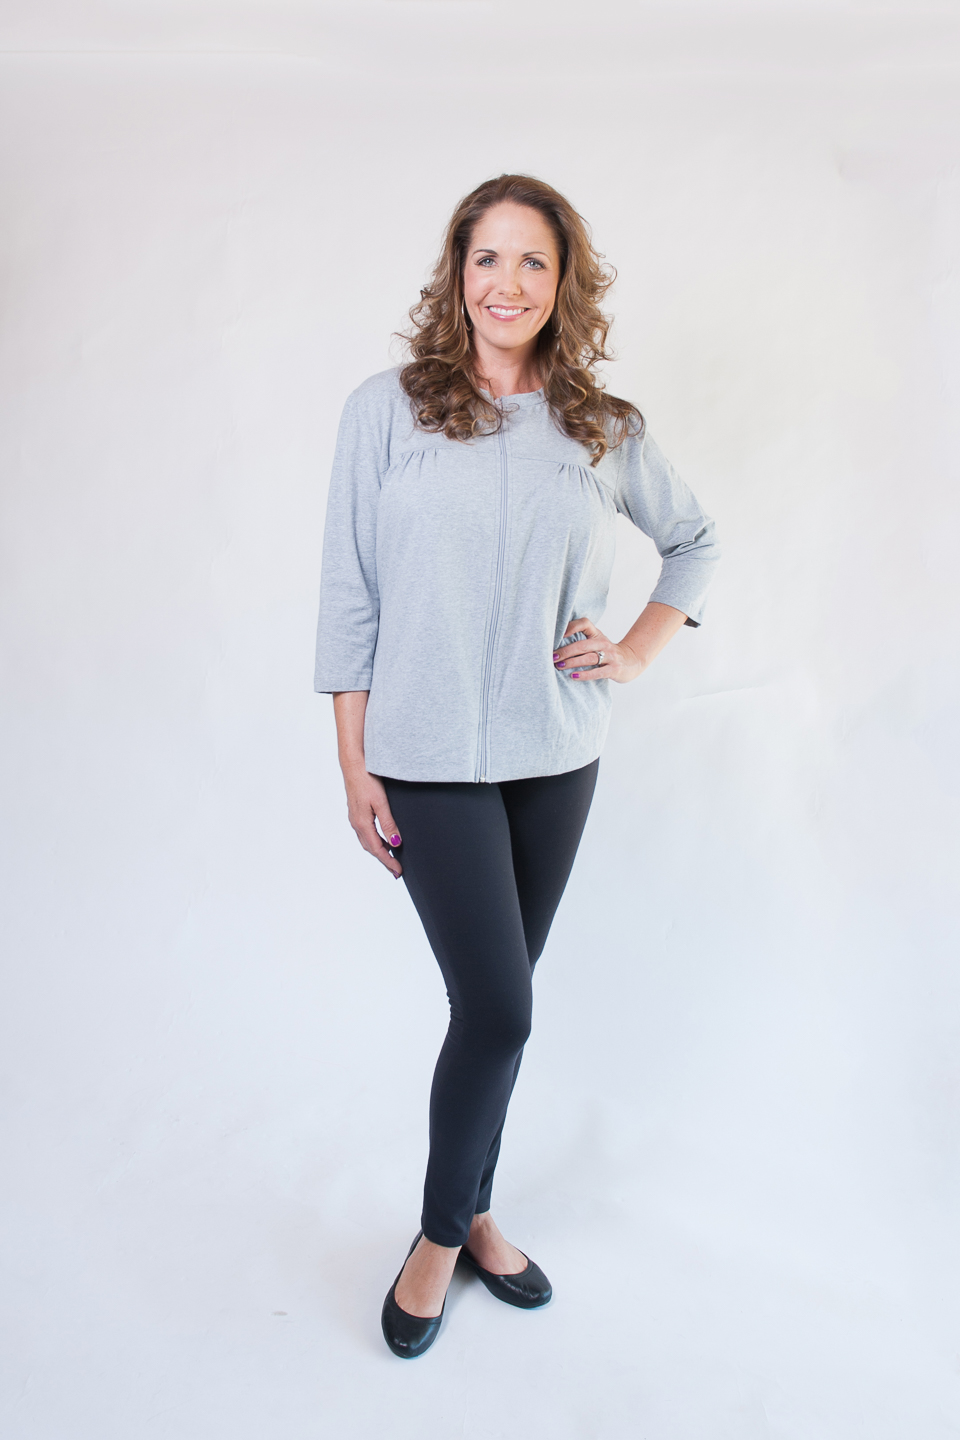 The POT Top - Long Sleeve Zip-Front Top in GREY $69.95